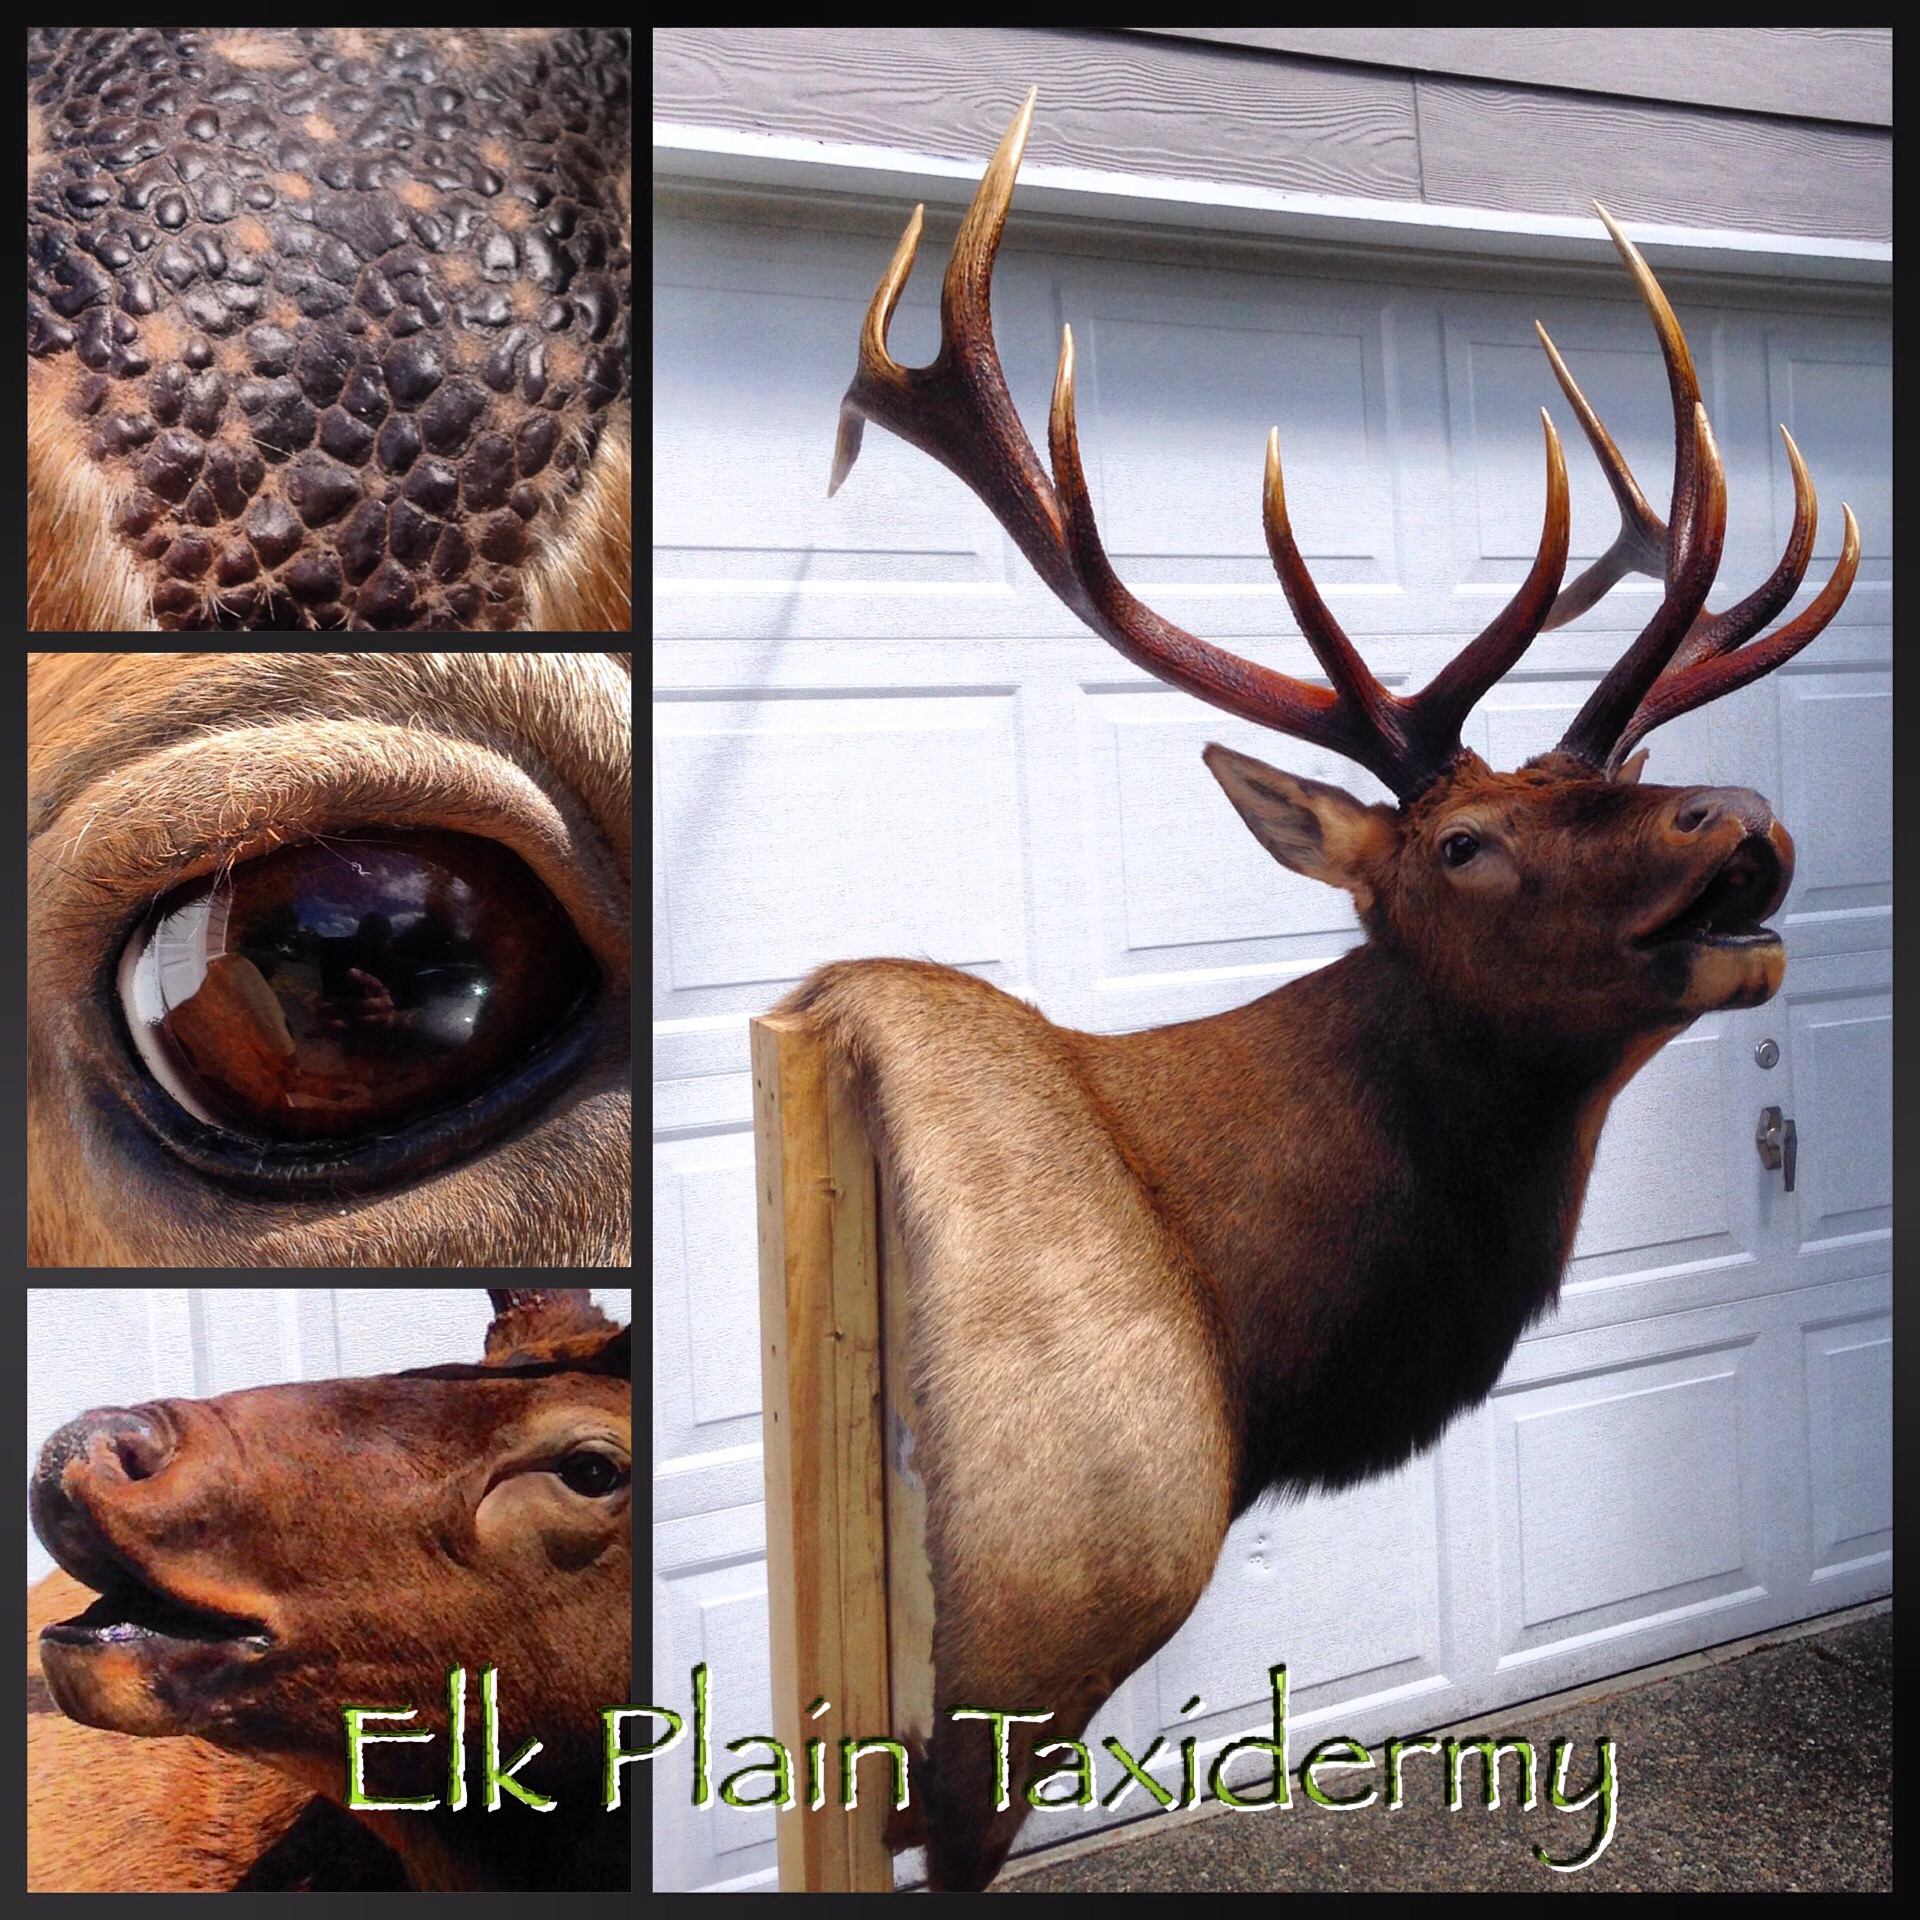 roosevelt elk shoulder western washington mount  Elk Plain Taxidermy